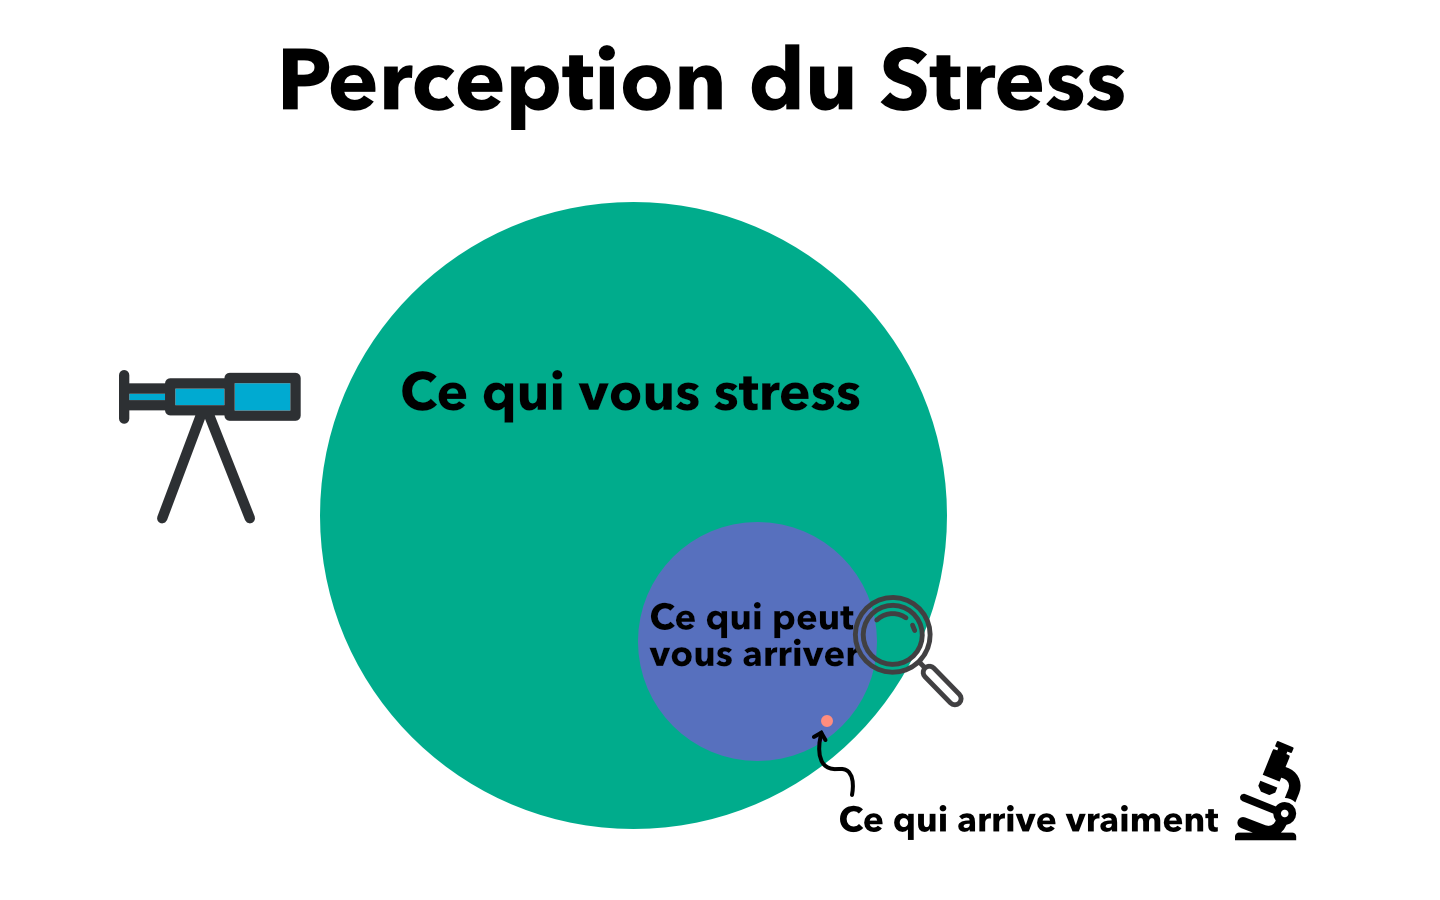 Le stress, un mécanisme naturel d'adaptation